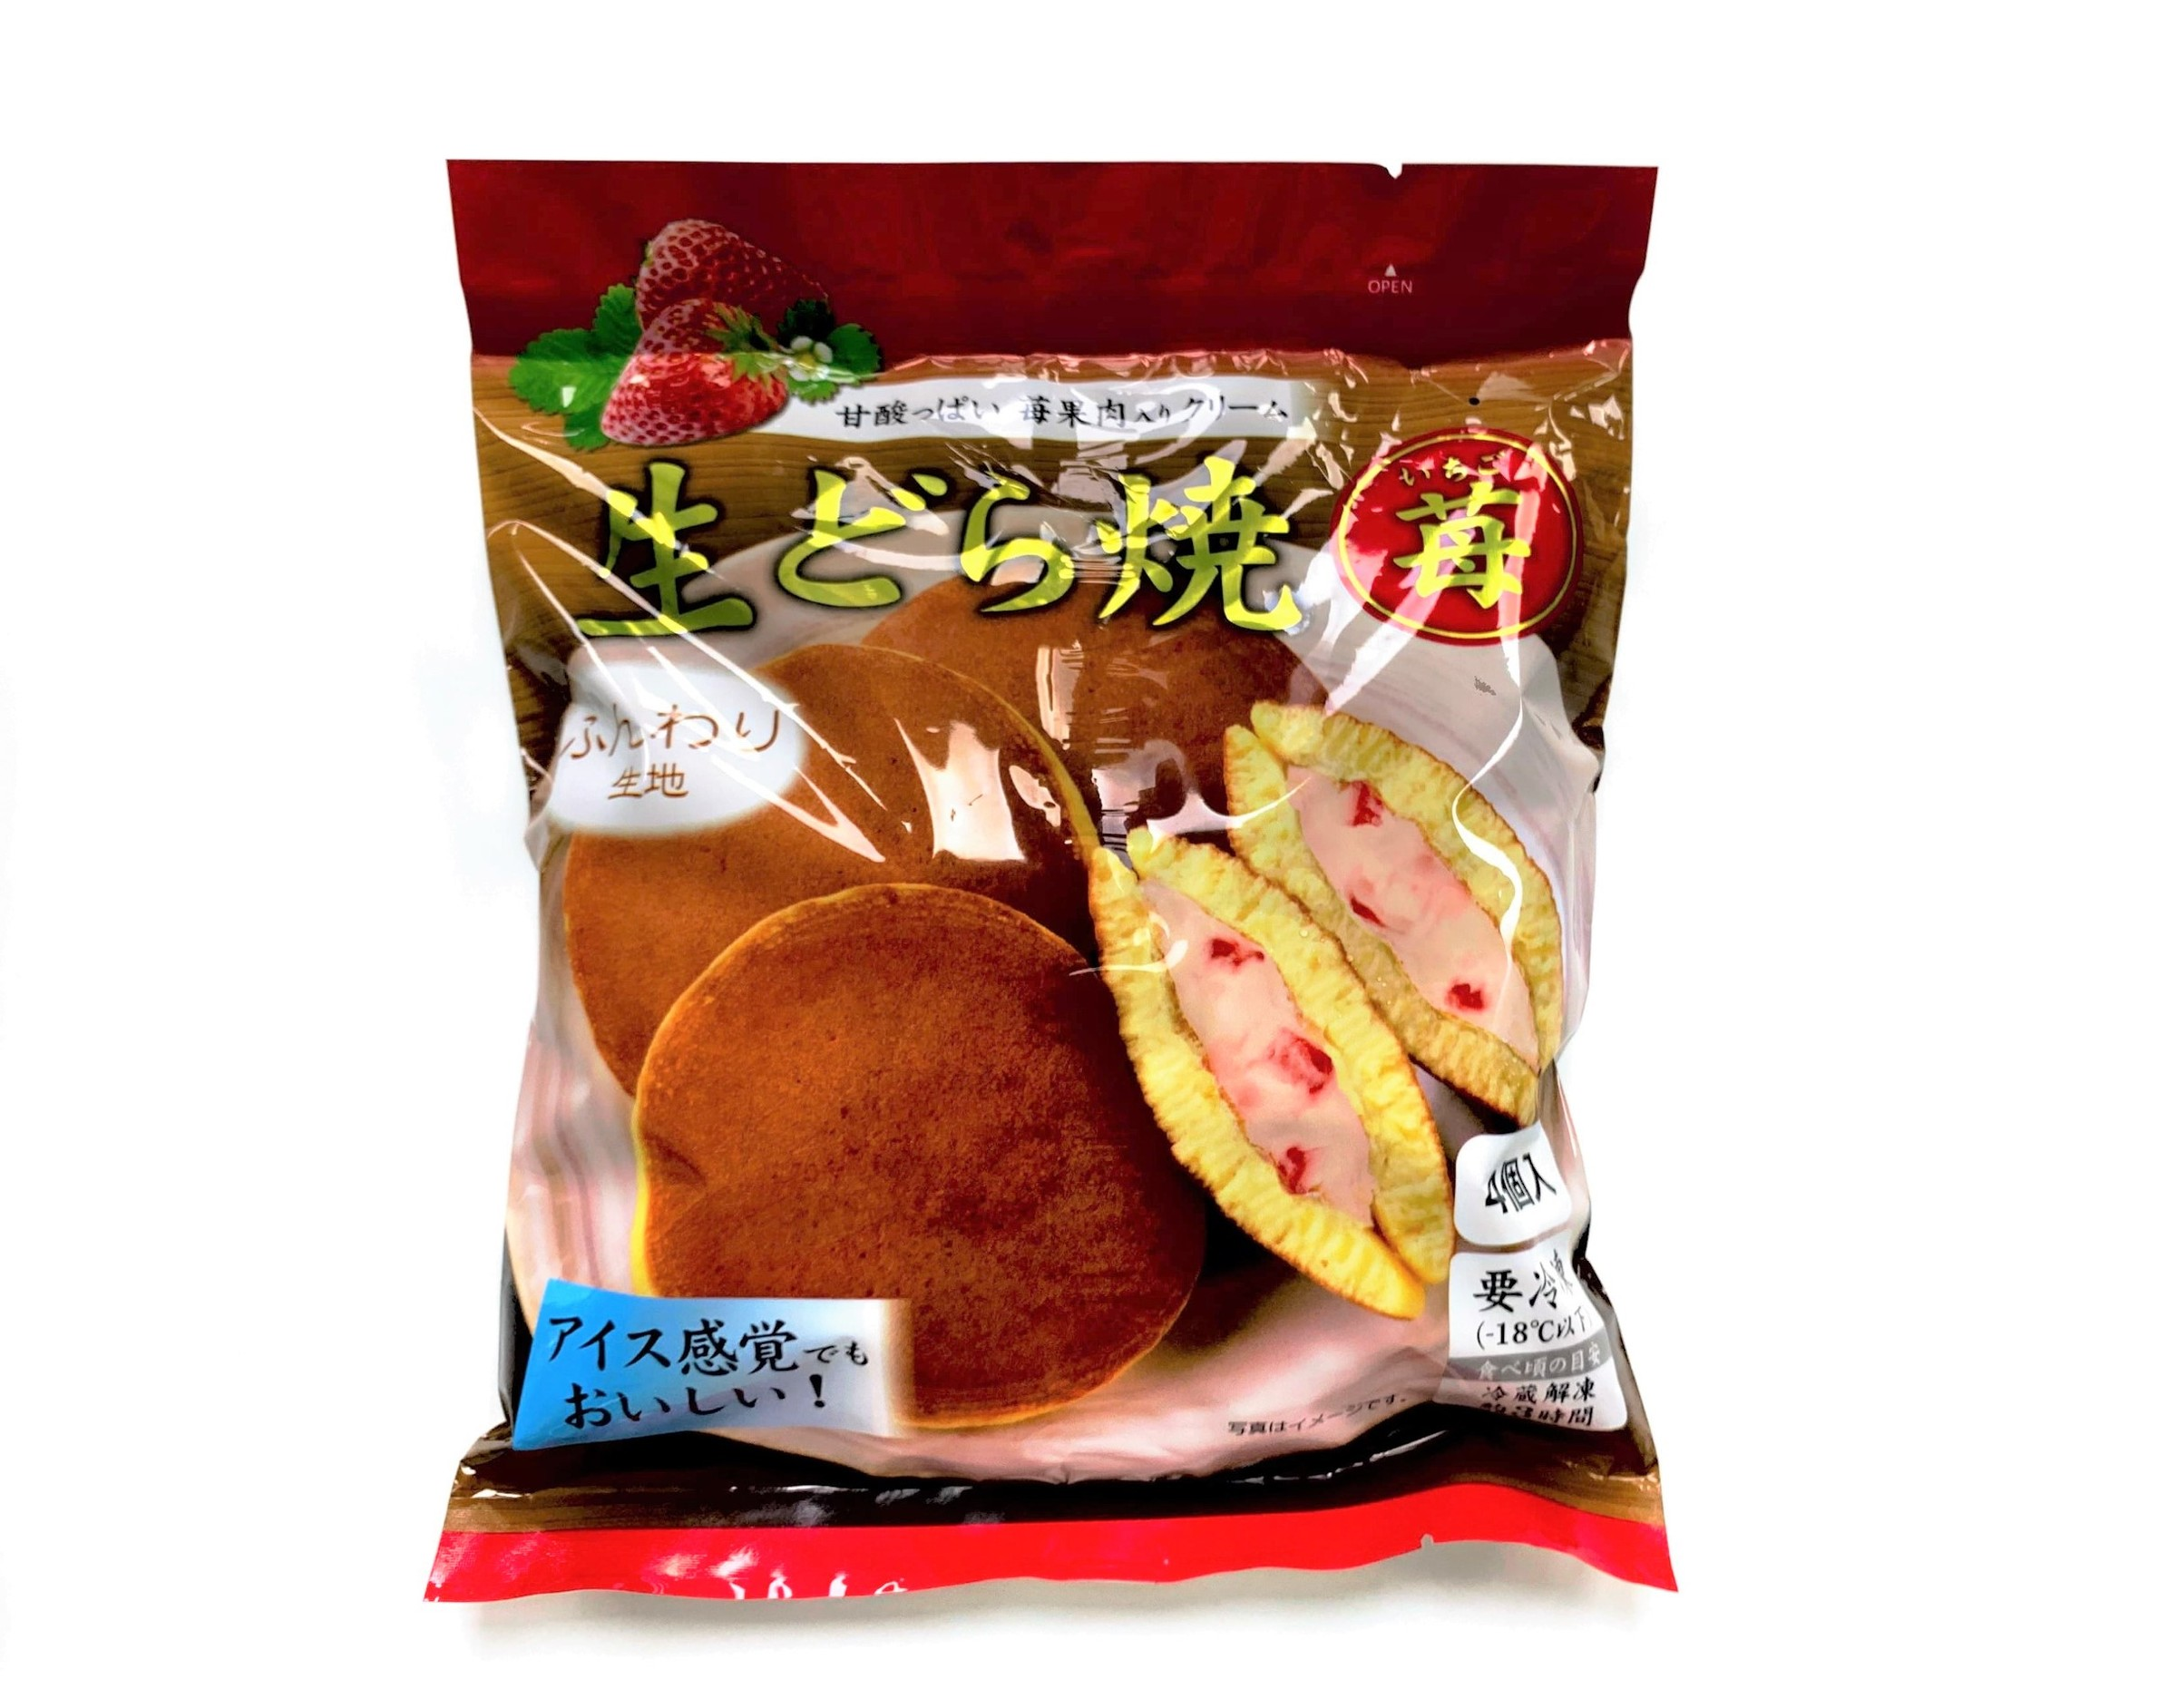 Strawberry Dorayaki Packaging.jpg